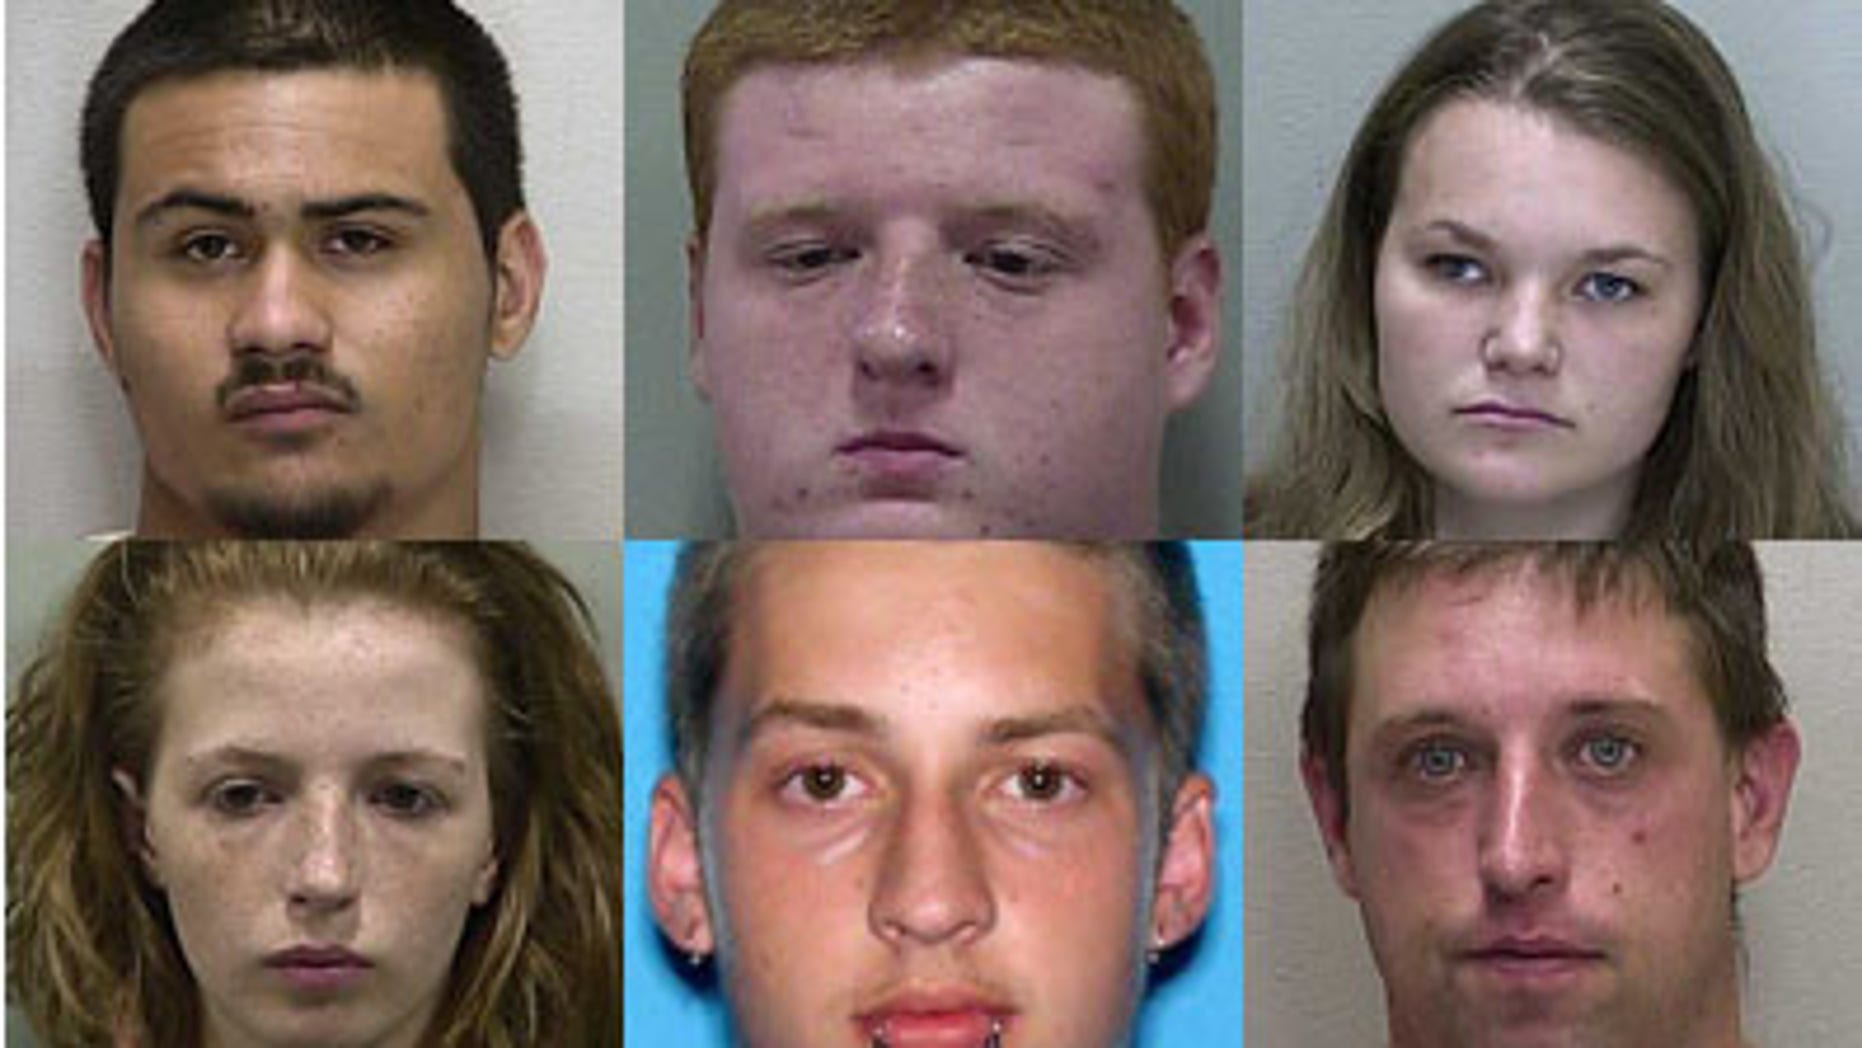 The six suspects in connection with the crime. Pictured clockwise:  Justin Soto, Kyle Hooper, Charlie Kay Ely, James Havens, Michael Bargo, Amber Wright.